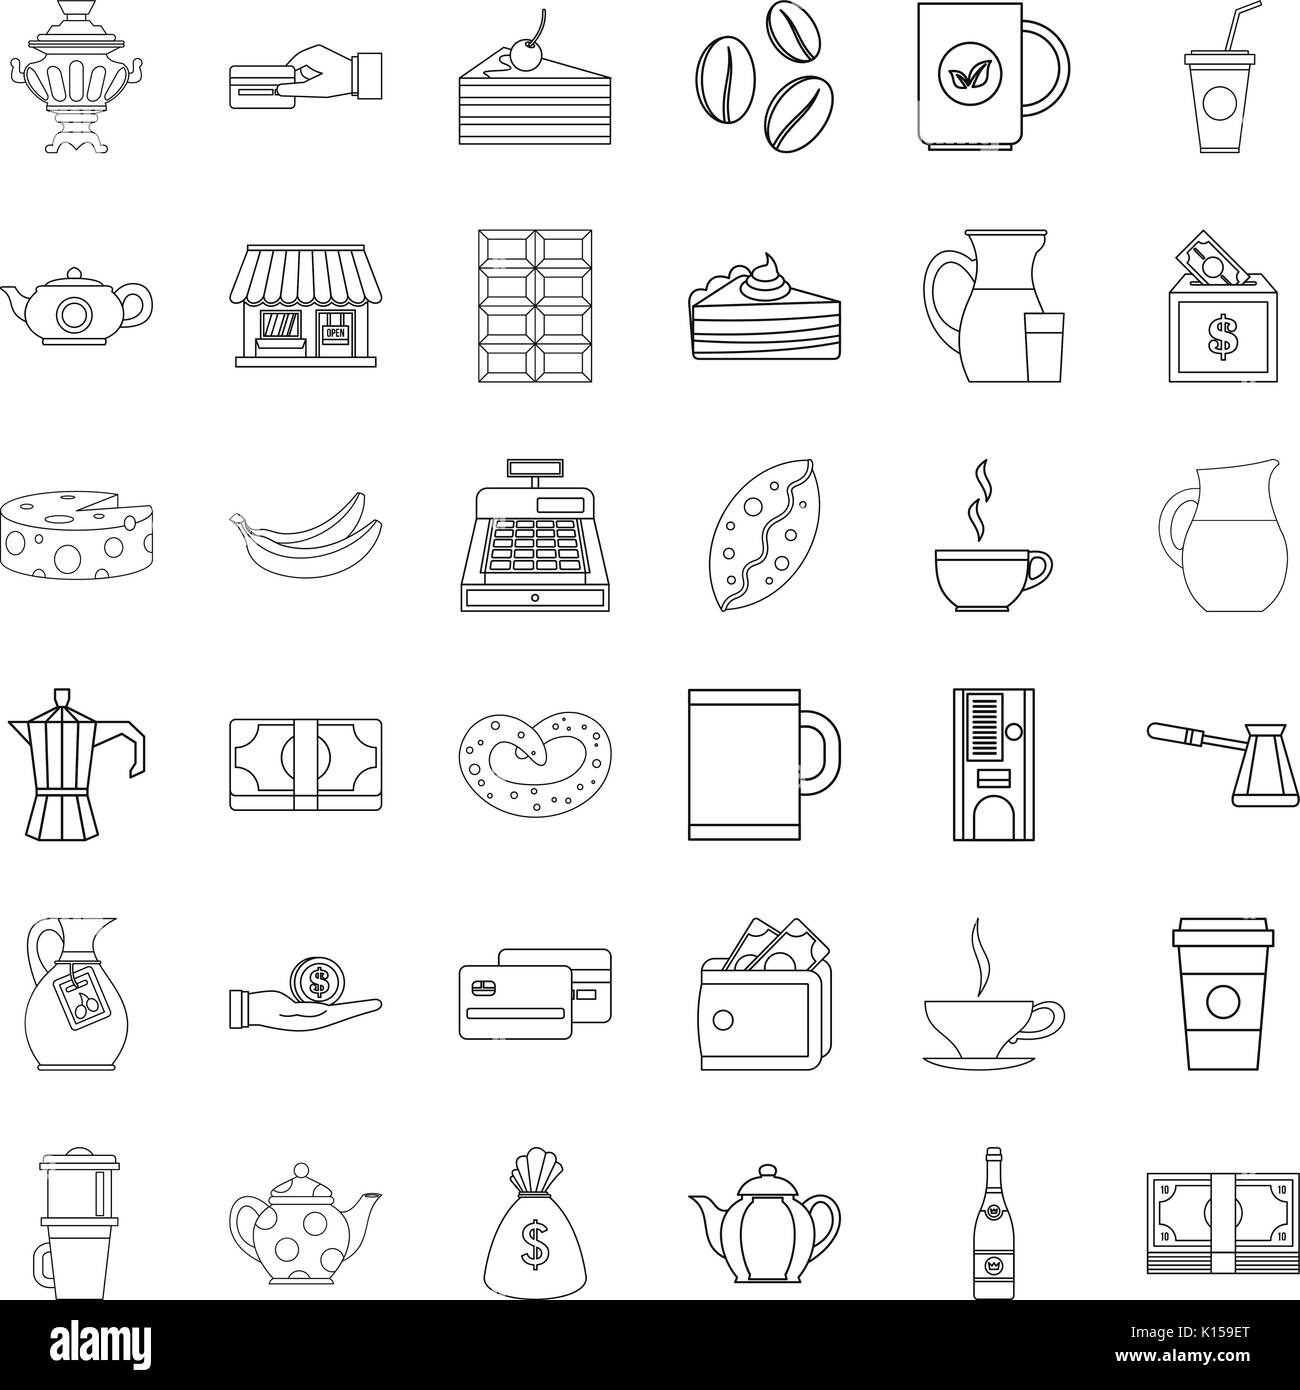 Bean icons set, outline style - Stock Image